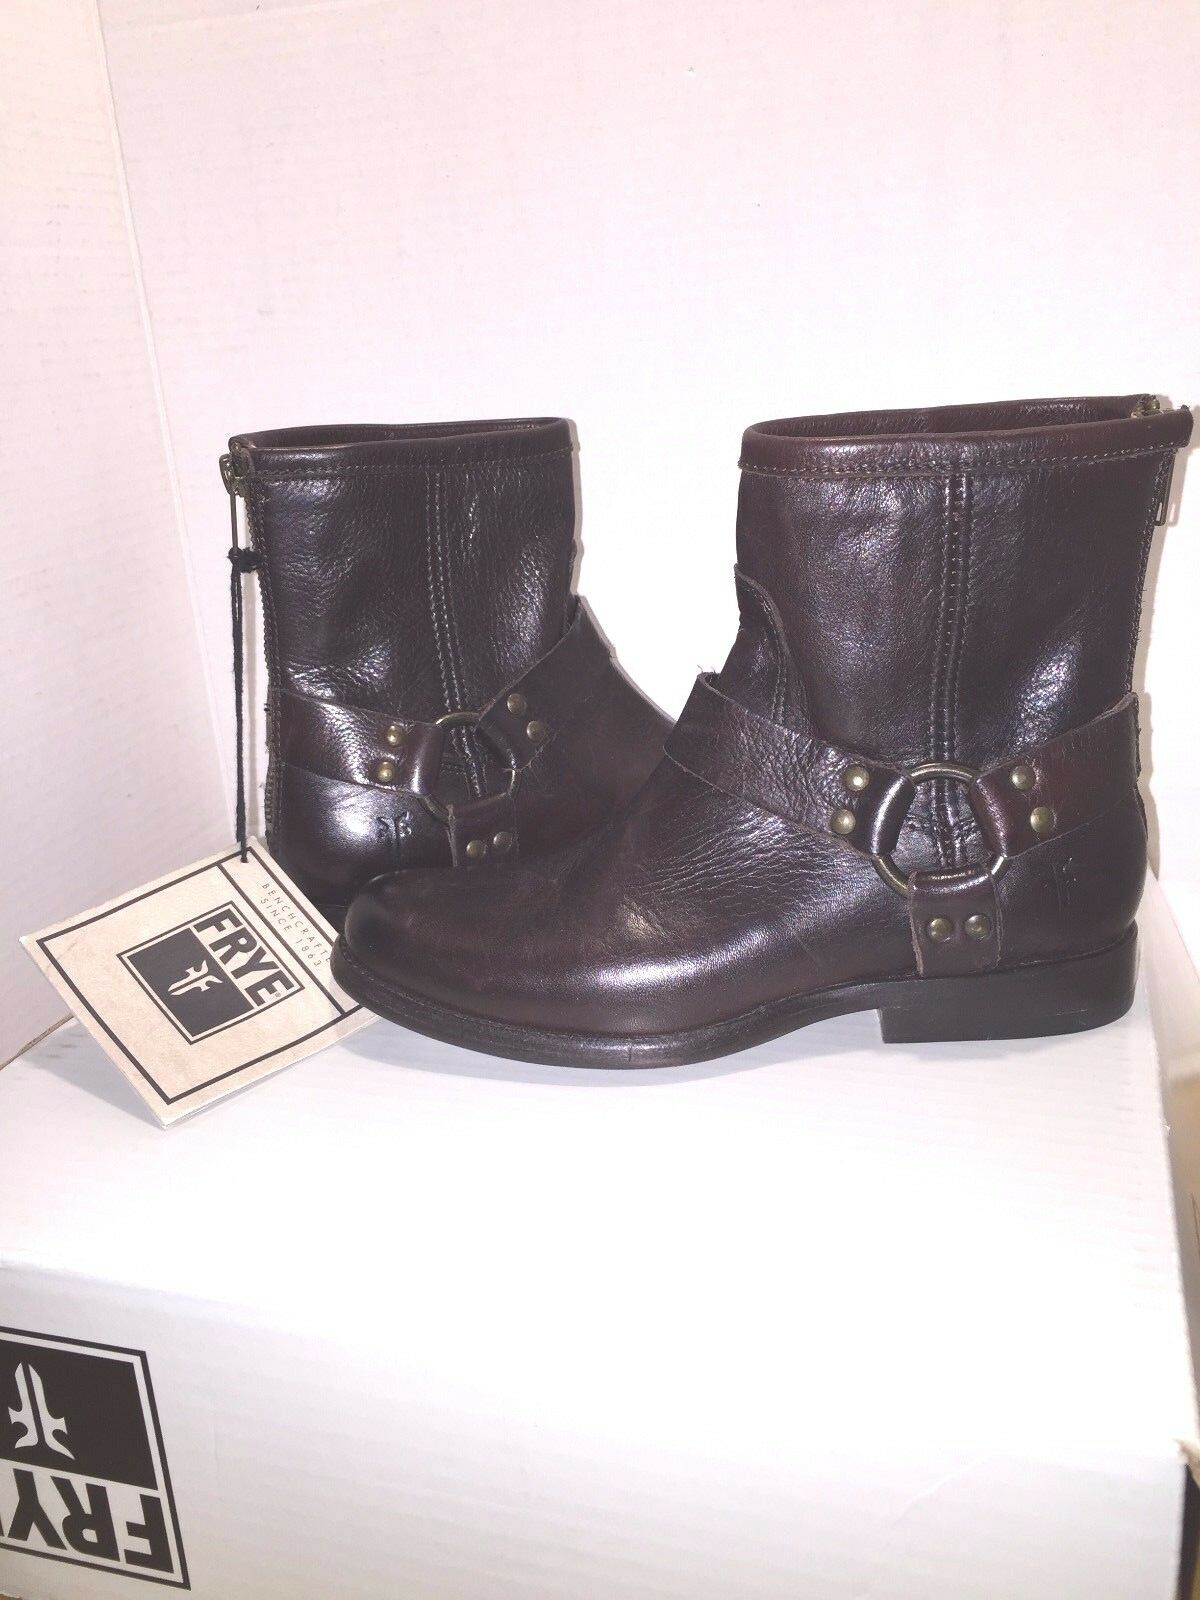 Frye Women's Phillip Harness Brown Leather Ankle Boots 76872 size 5.5